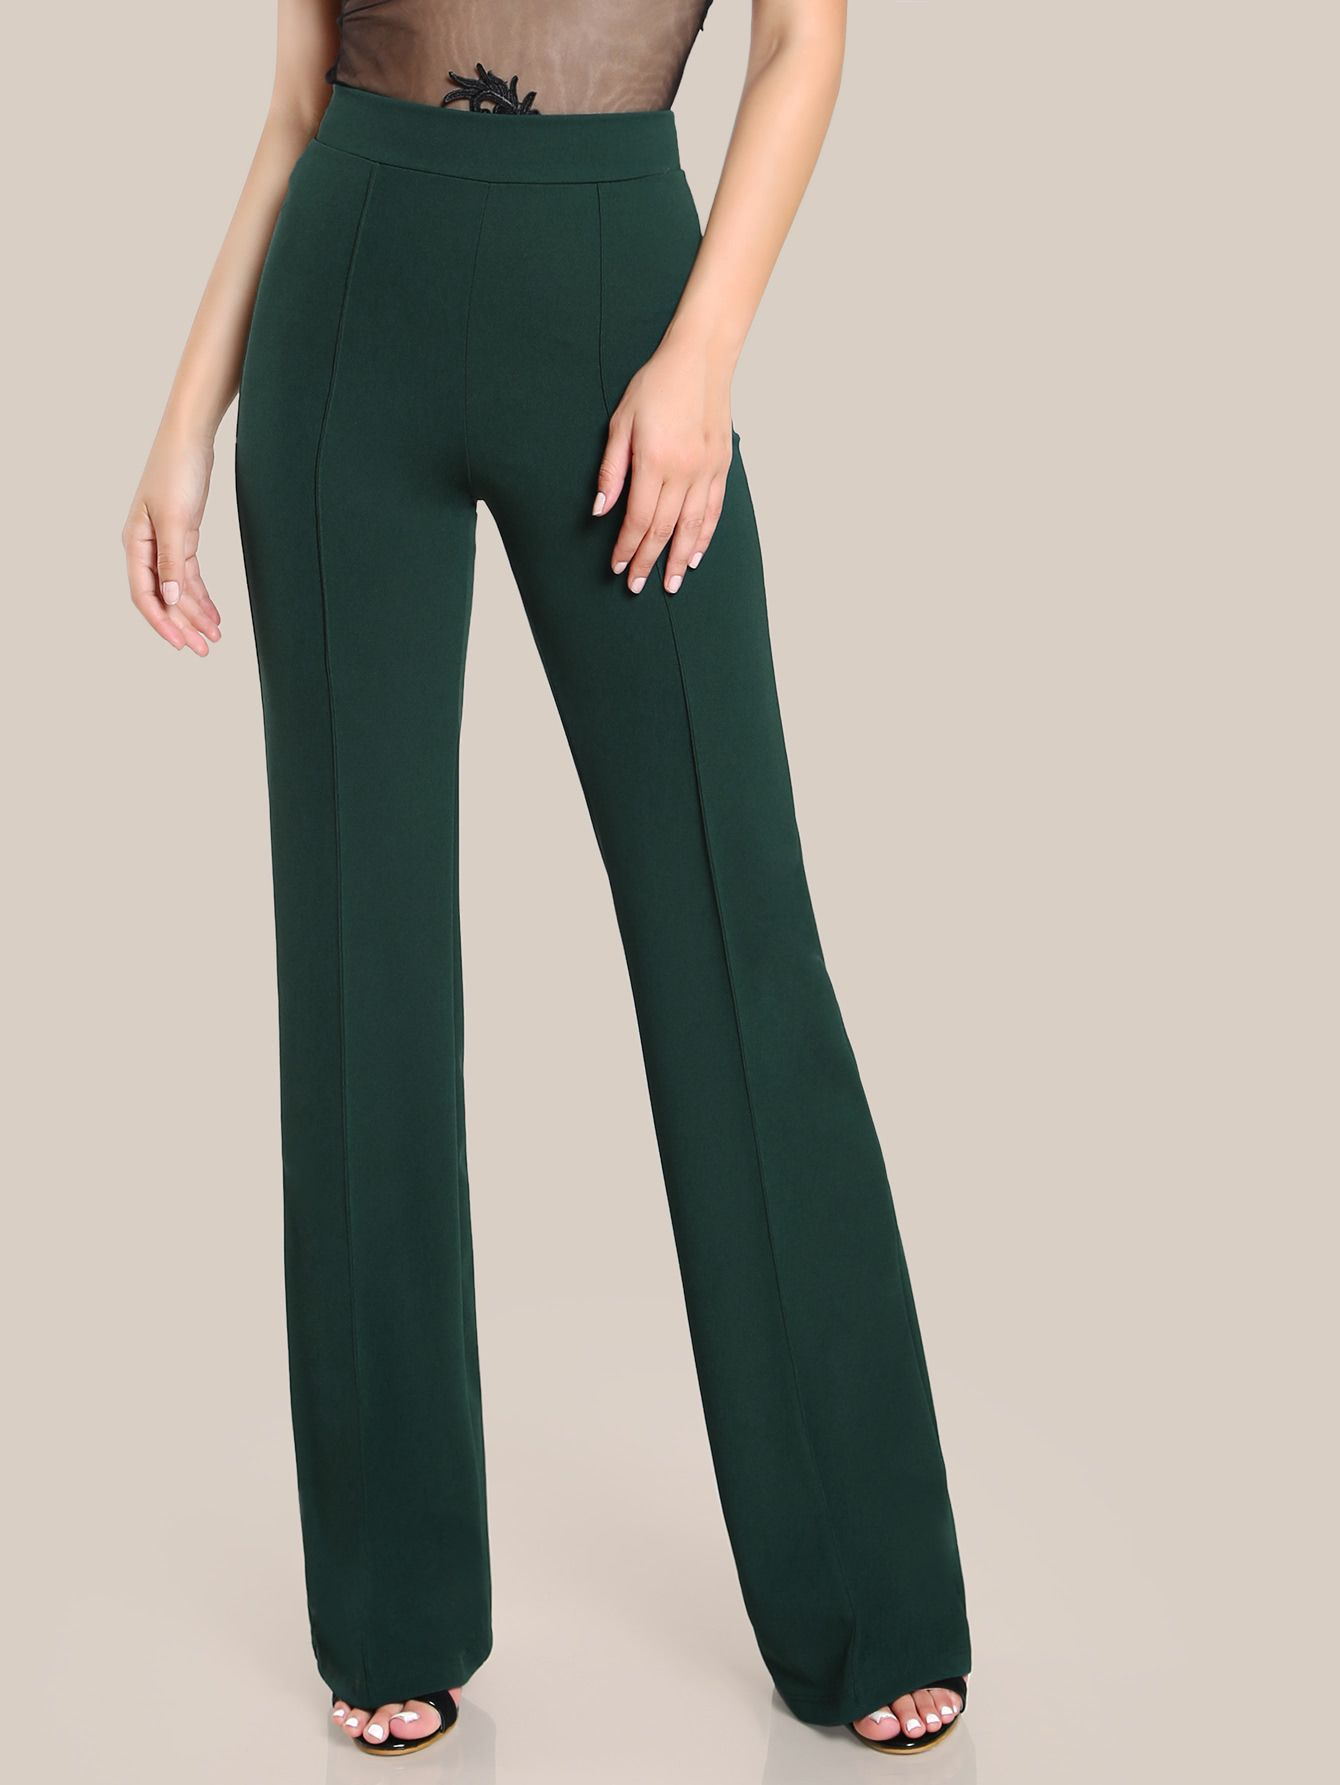 018616a833 Online shopping for High Rise Piped Dress Pants from a great selection of  women's fashion clothing & more at MakeMeChic.COM.